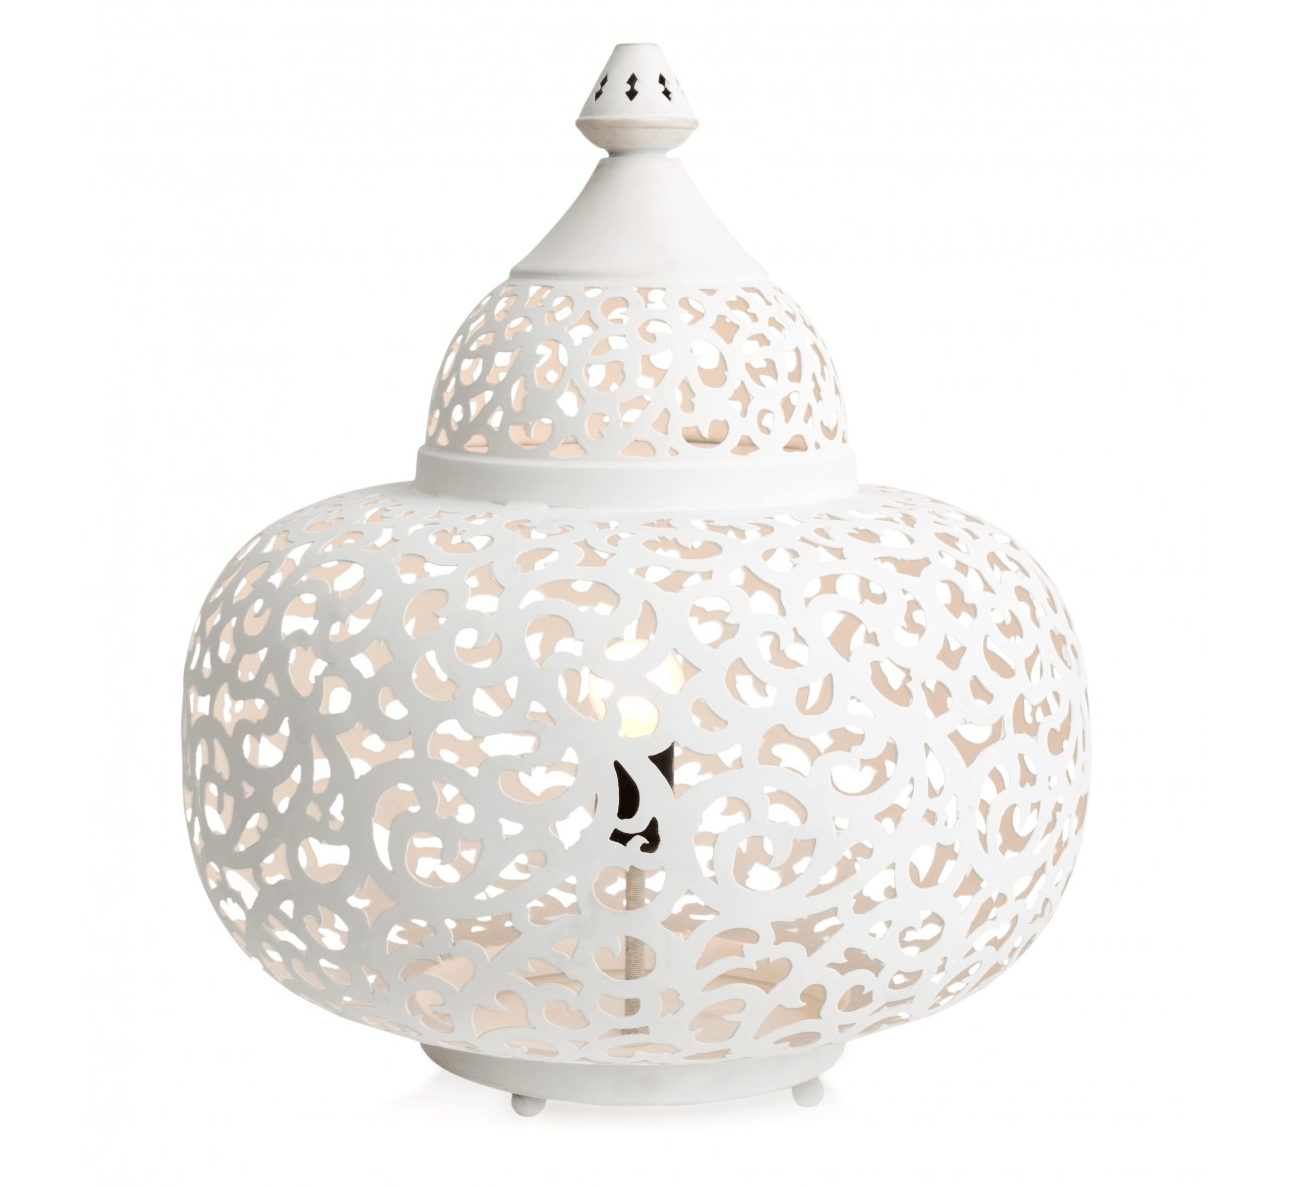 8 Fabulous Table Lamps Our Picks The Interiors Addict